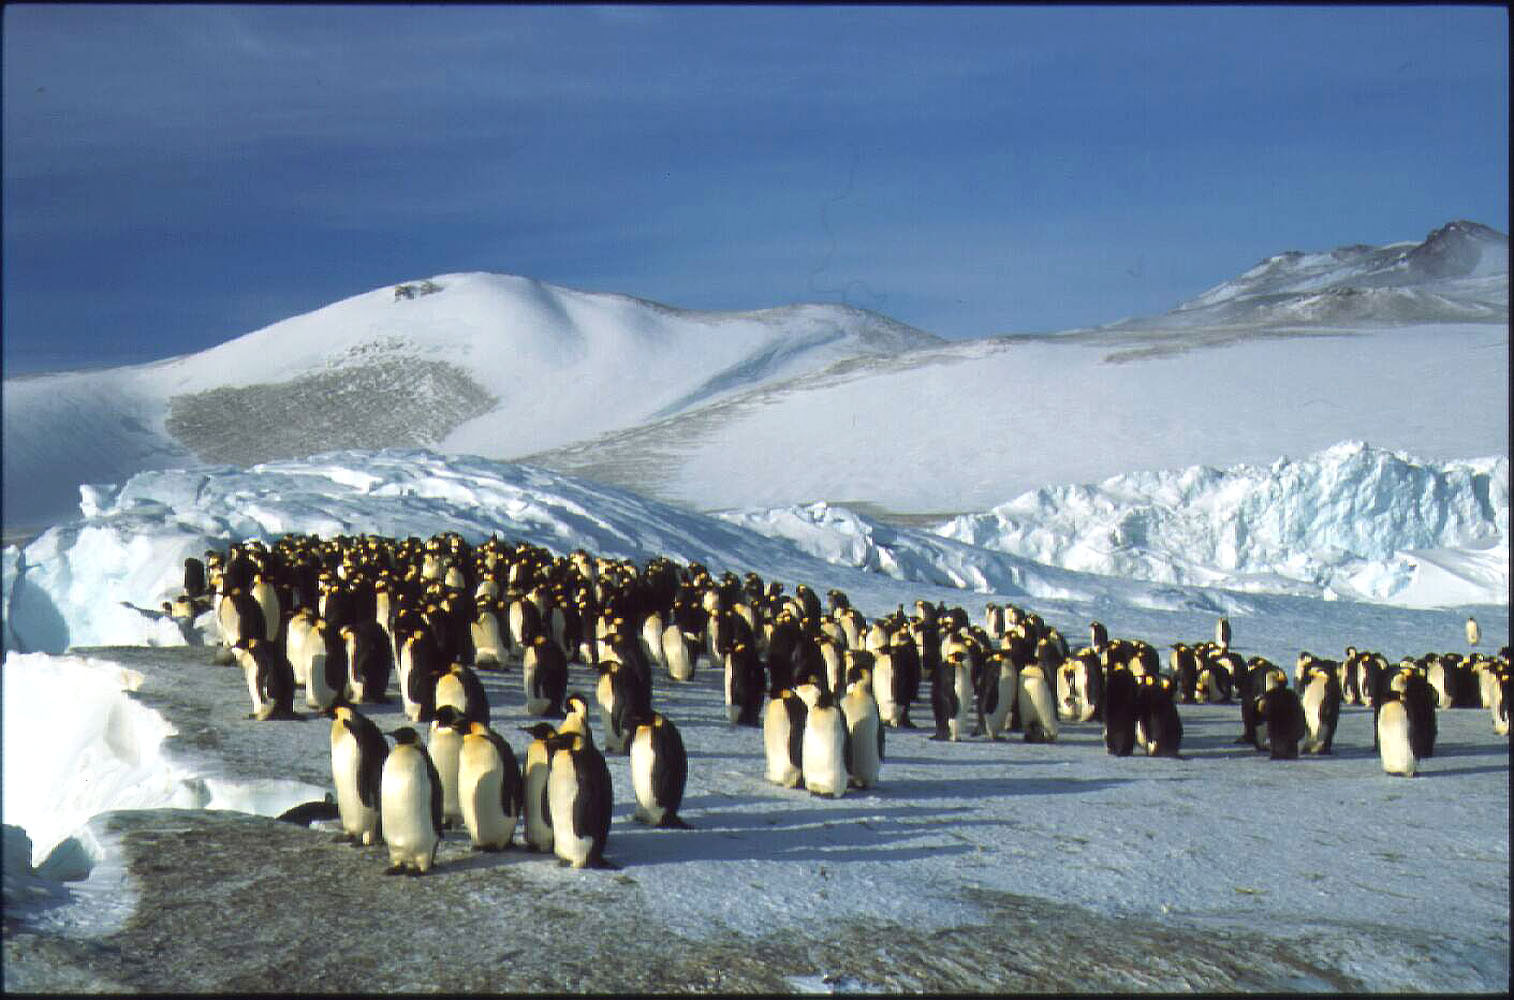 penguins and their habitat